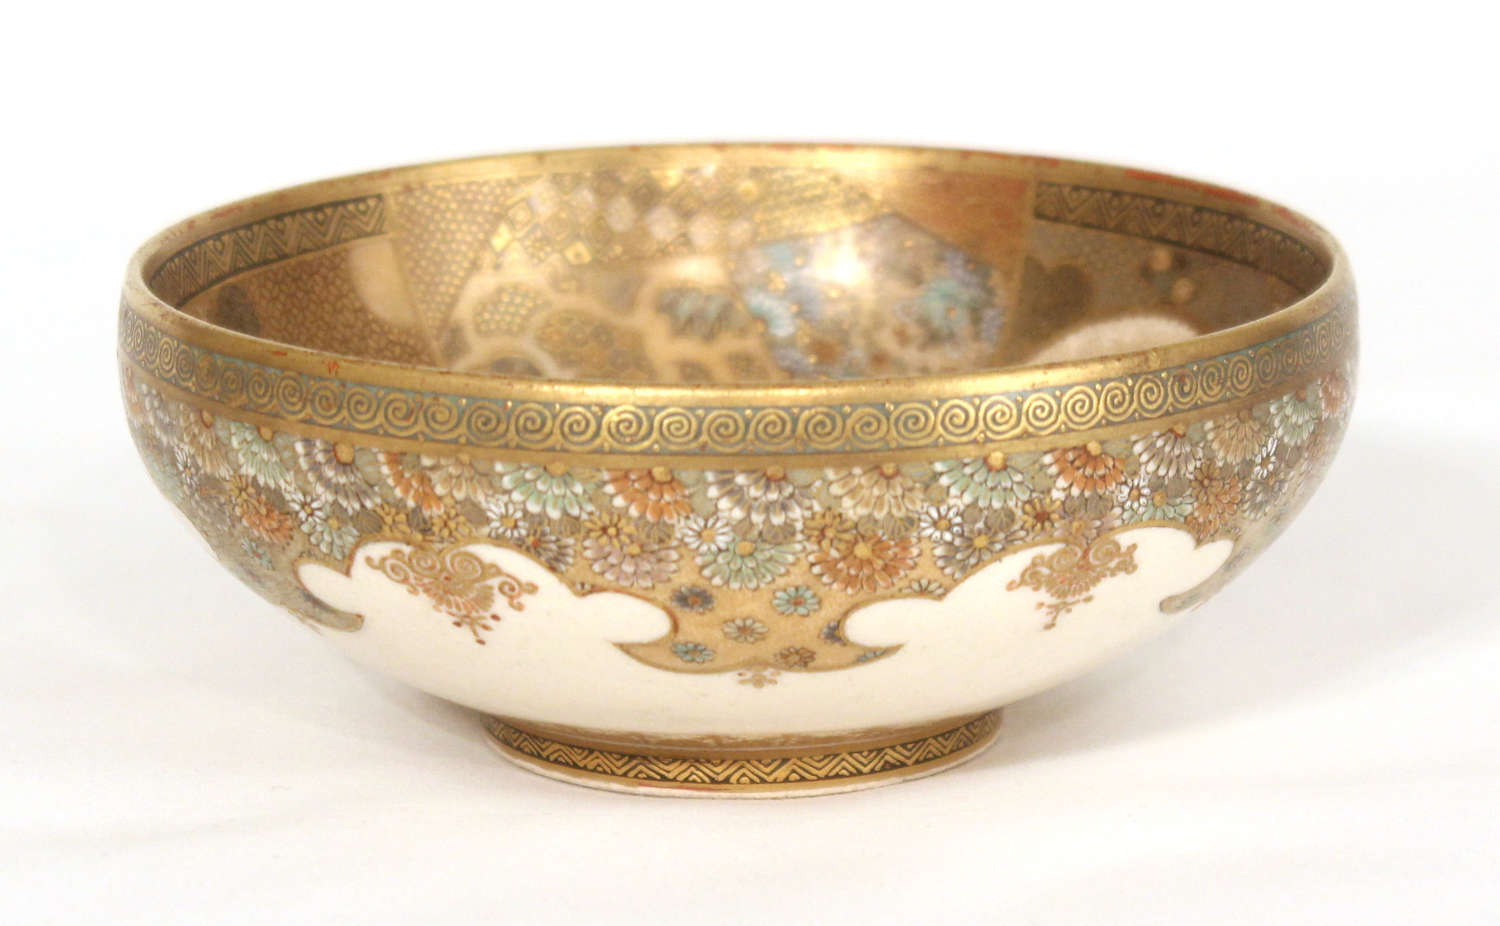 An Exceptional Japanese Meiji Period Satsuma Bowl